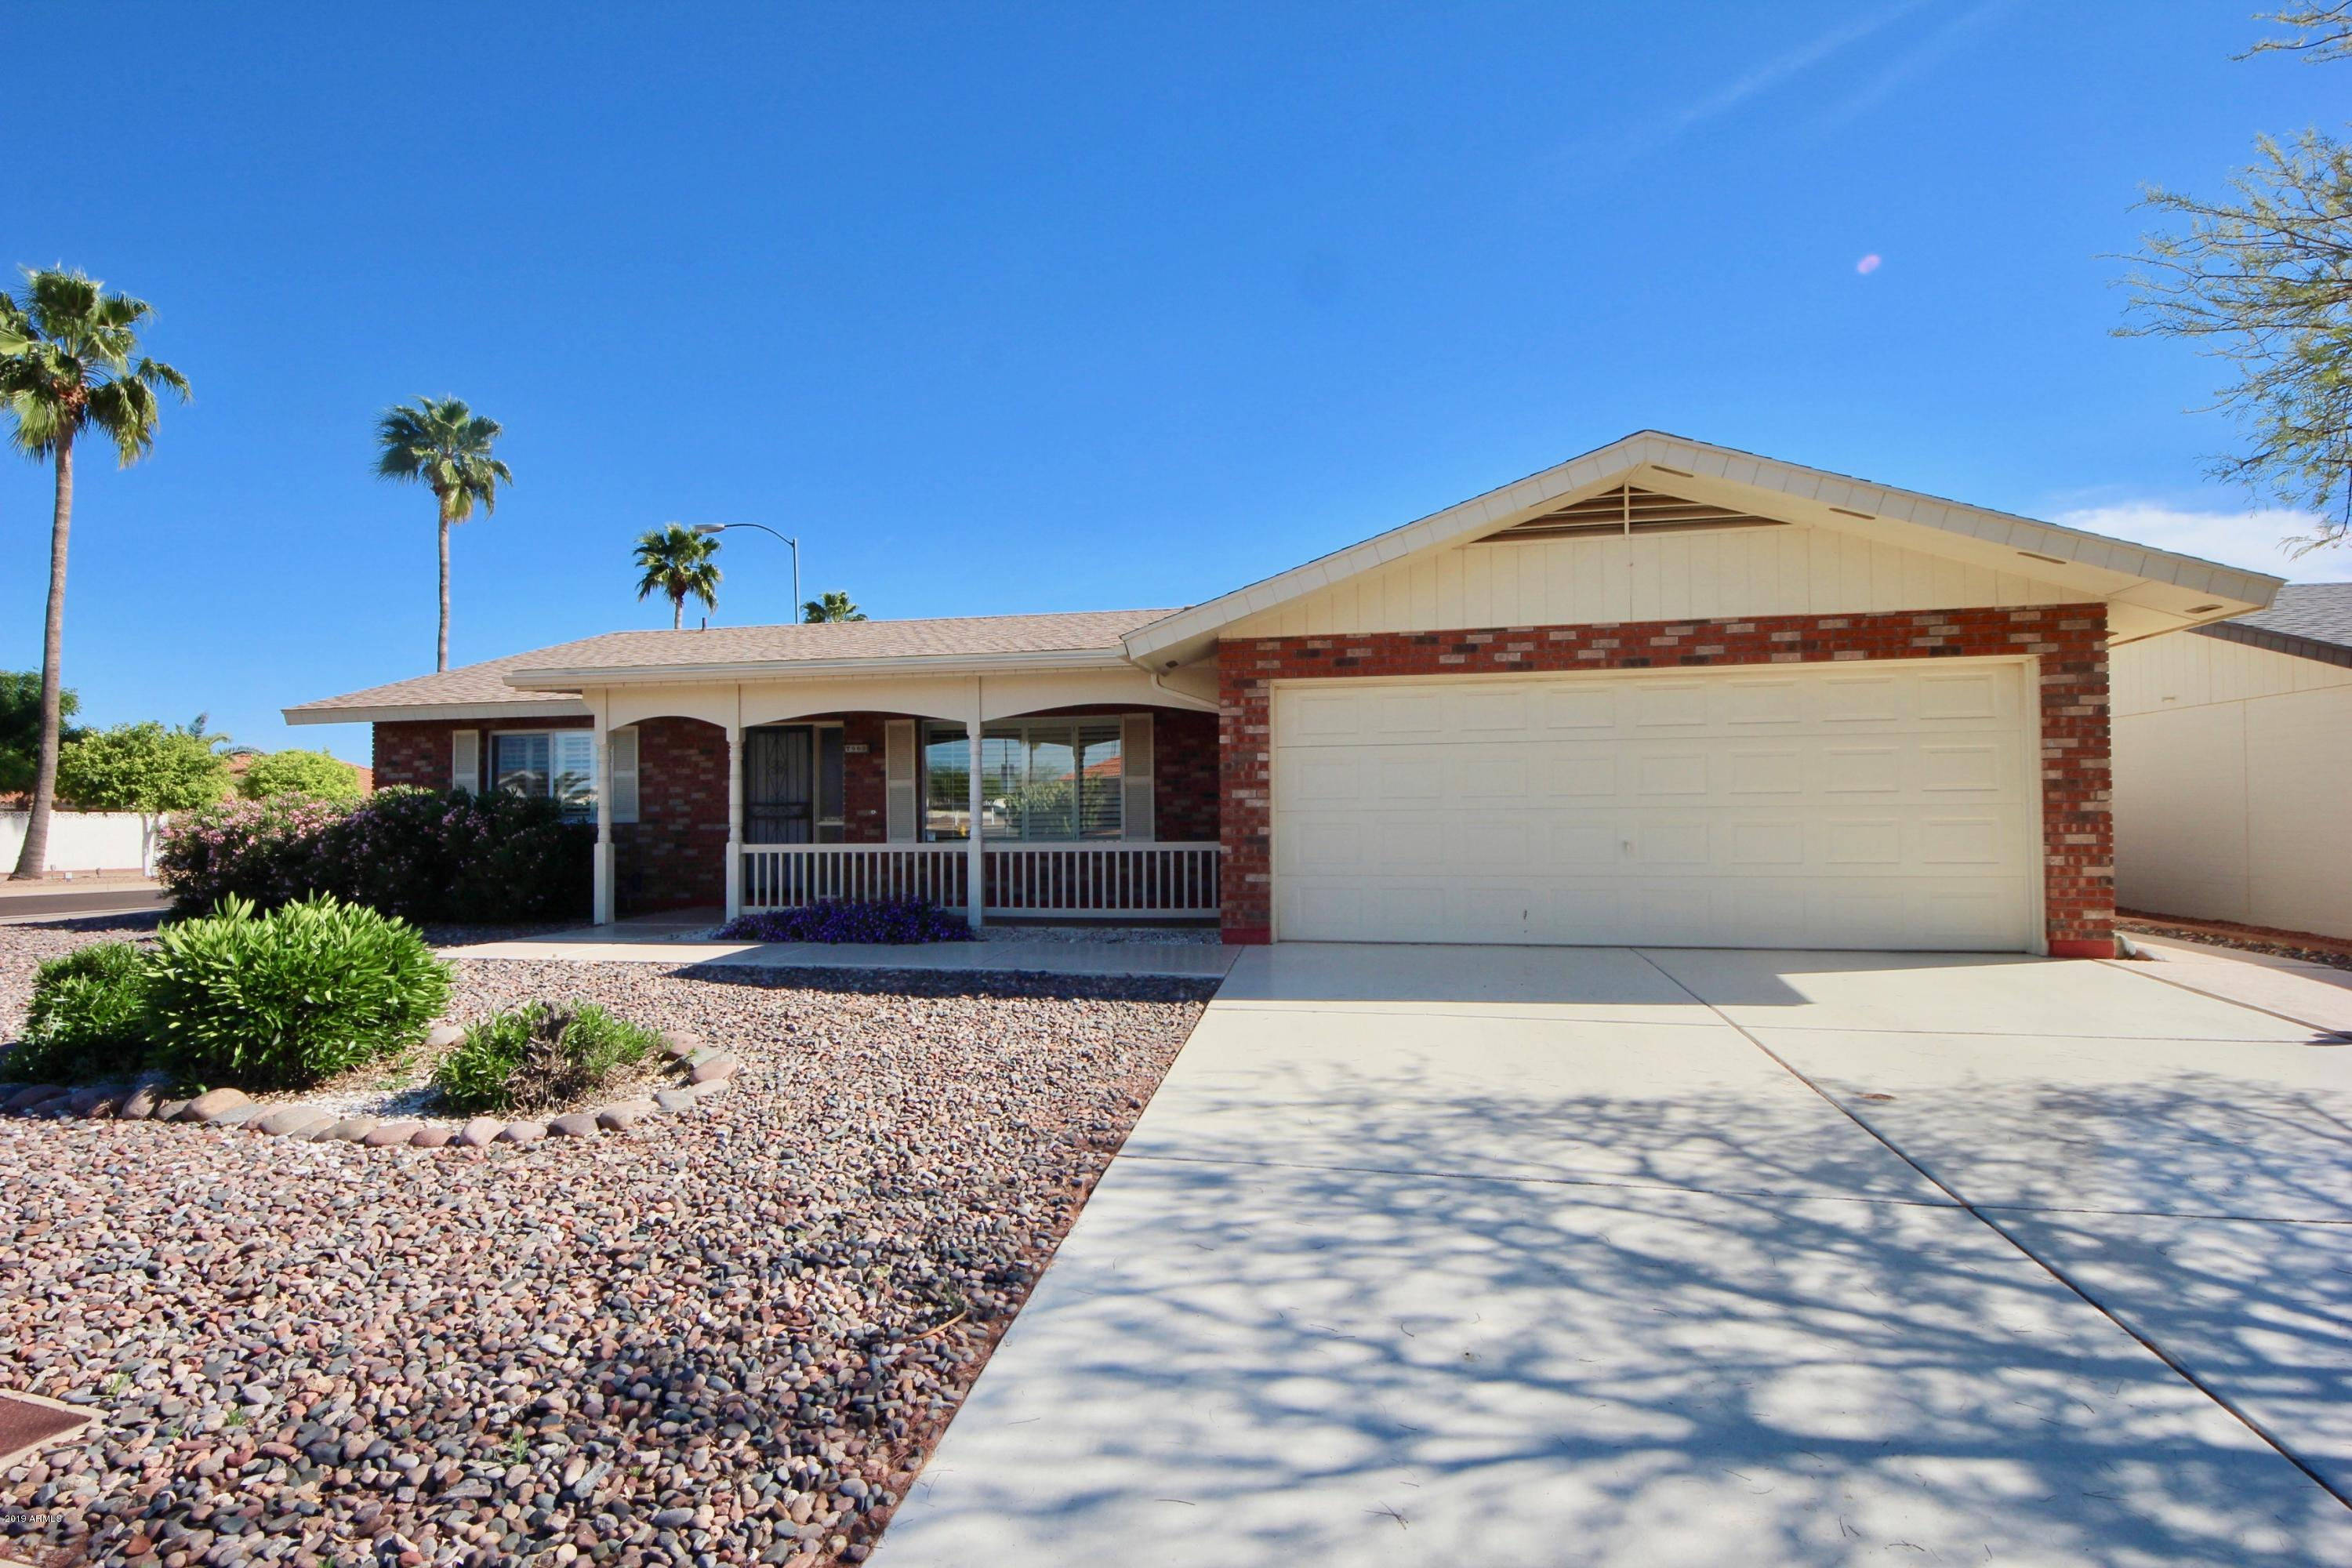 Photo of 7963 E NEVILLE Avenue, Mesa, AZ 85209